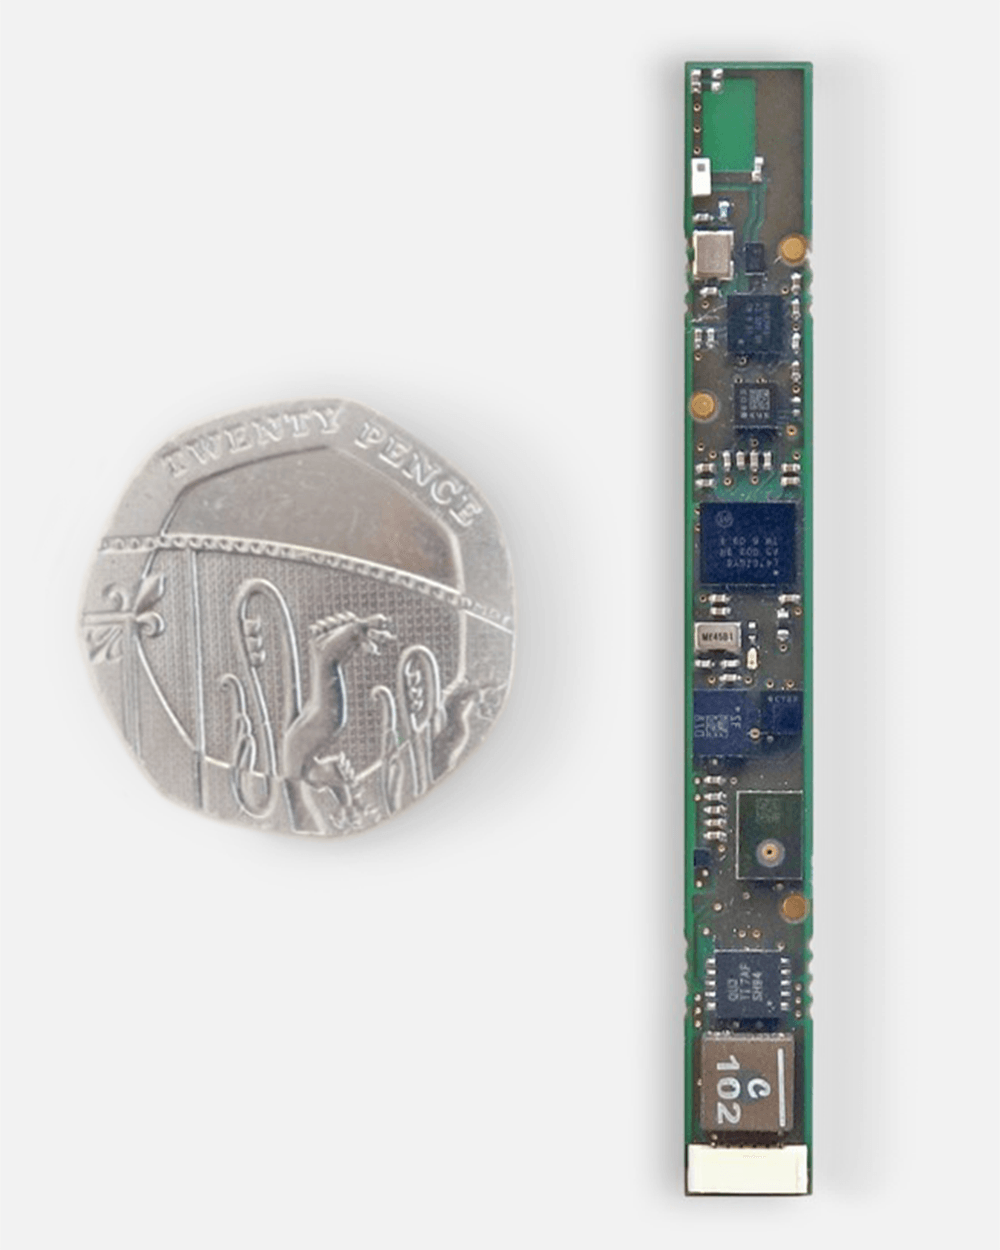 A circuit board next to a 50 pence to represent our medical device design capabilities